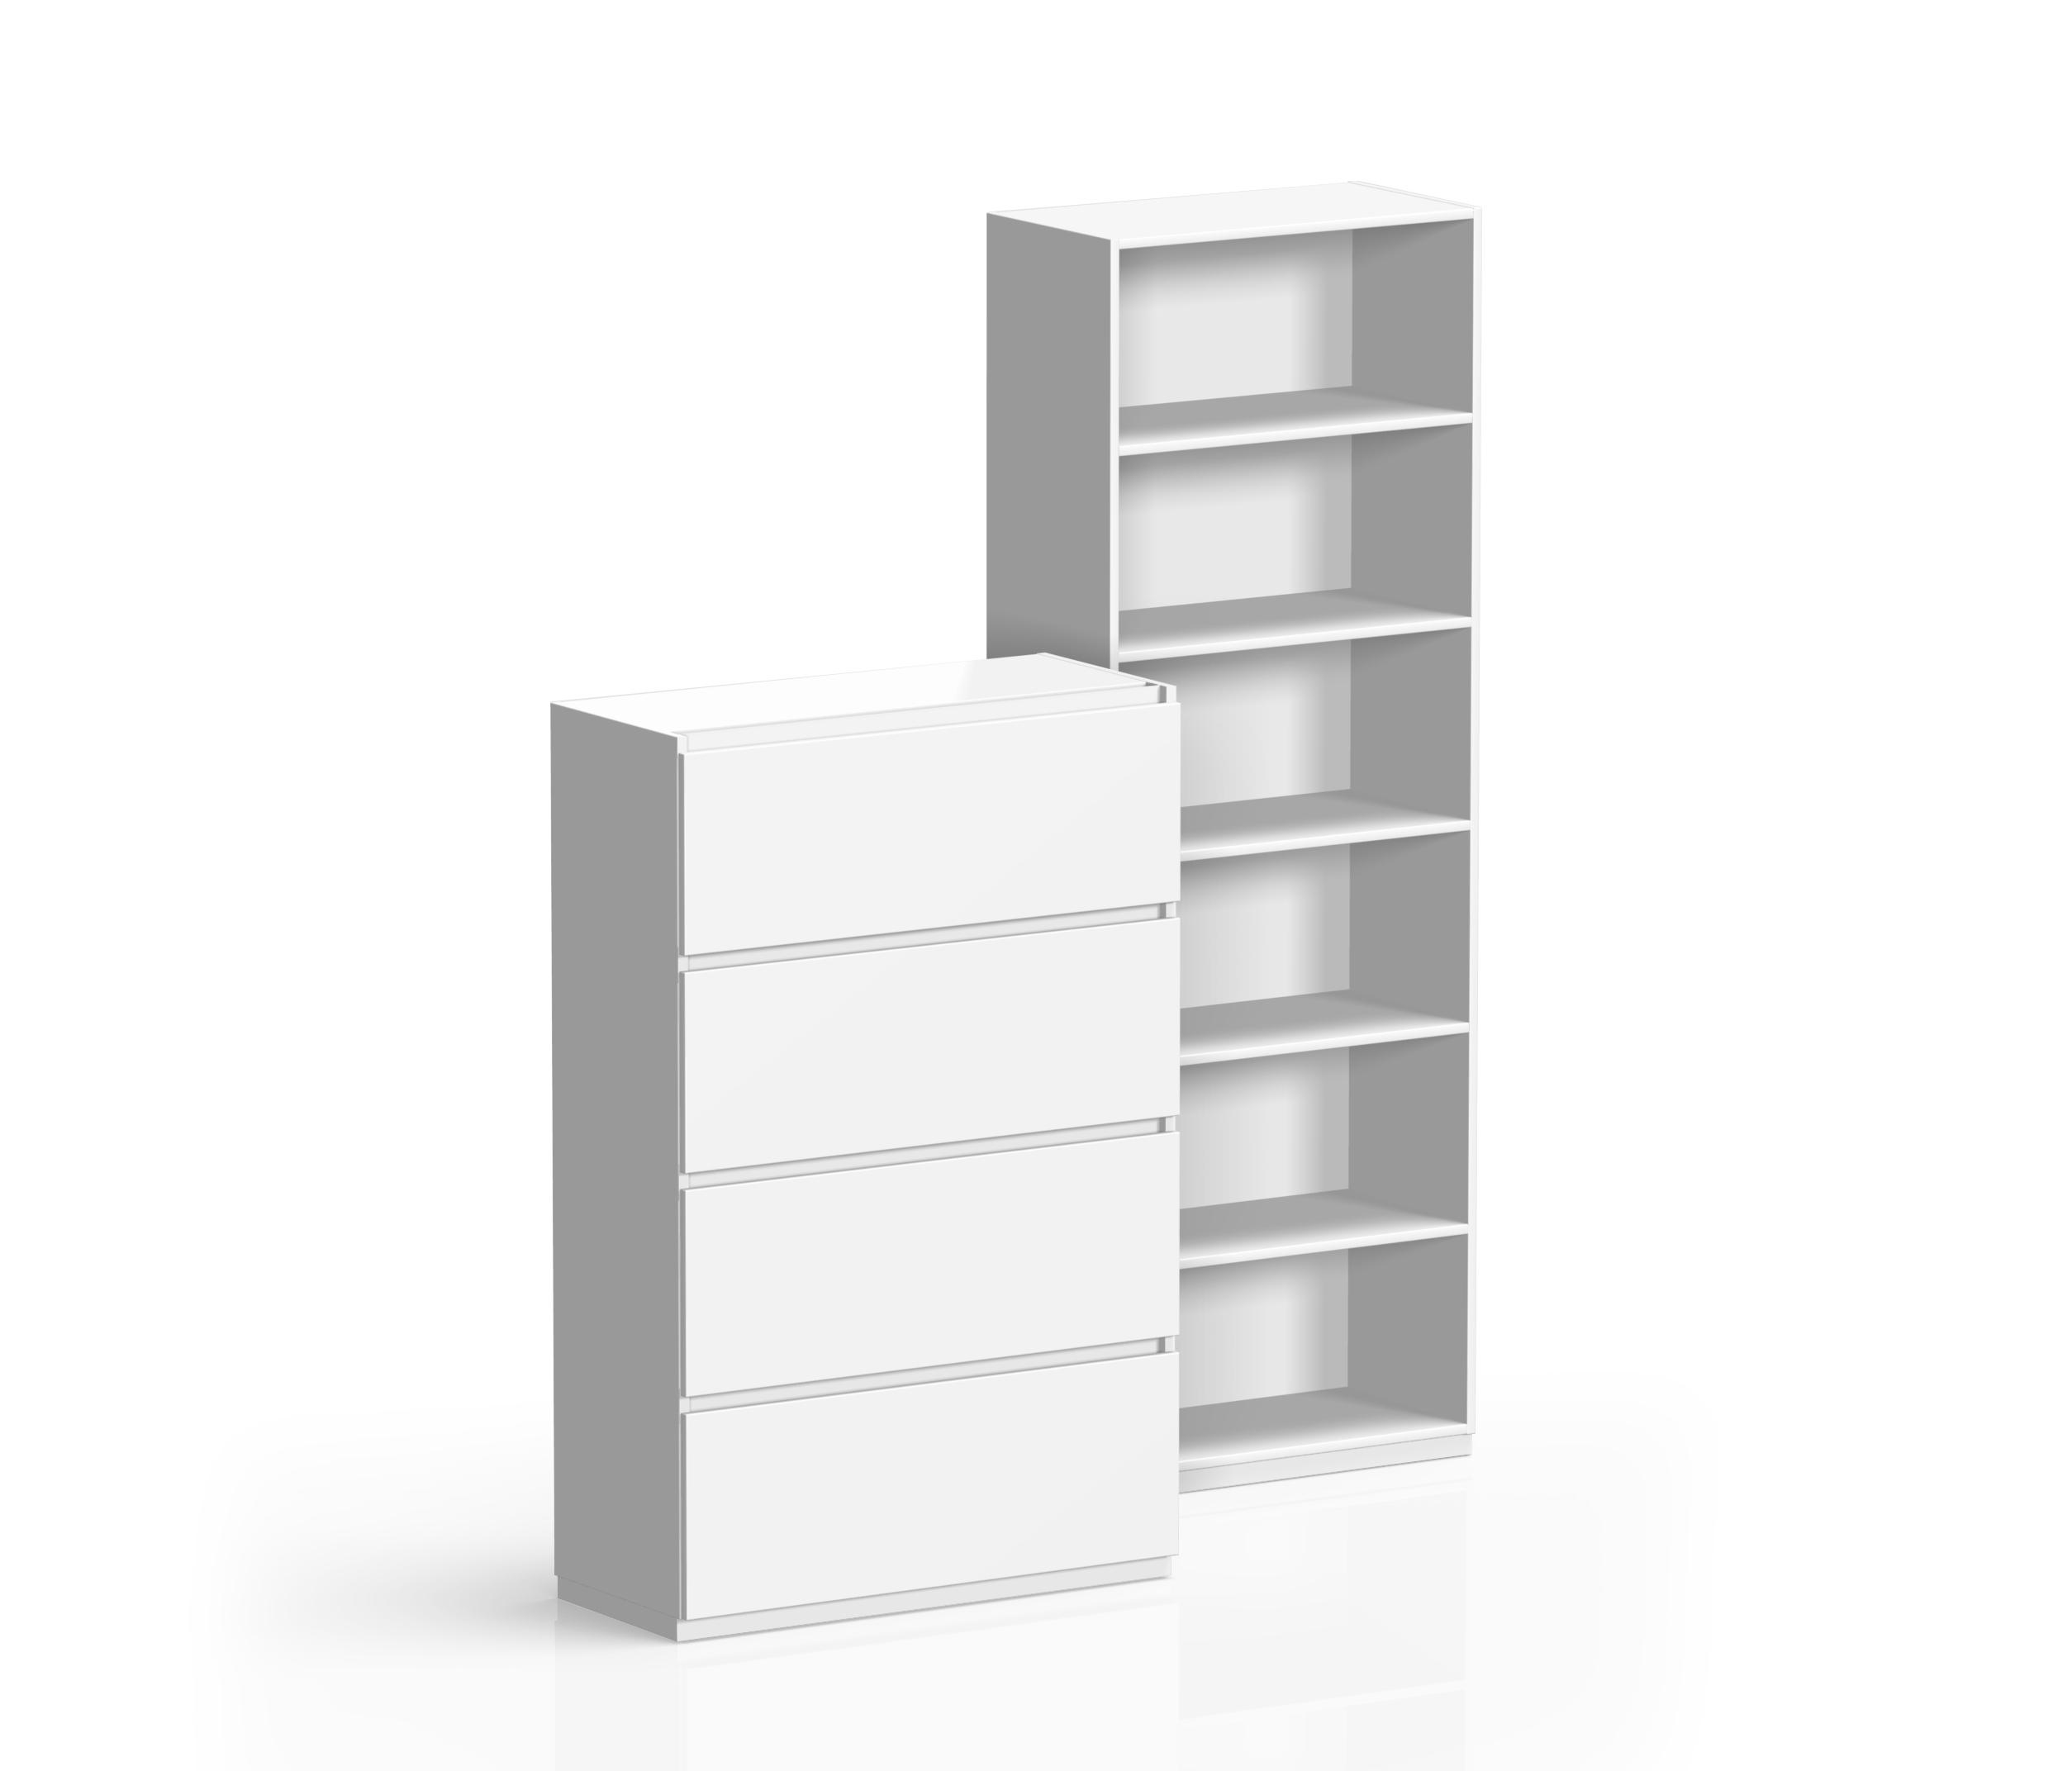 INTAVIS STORAGE SYSTEM - Cabinets from Assmann Büromöbel | Architonic